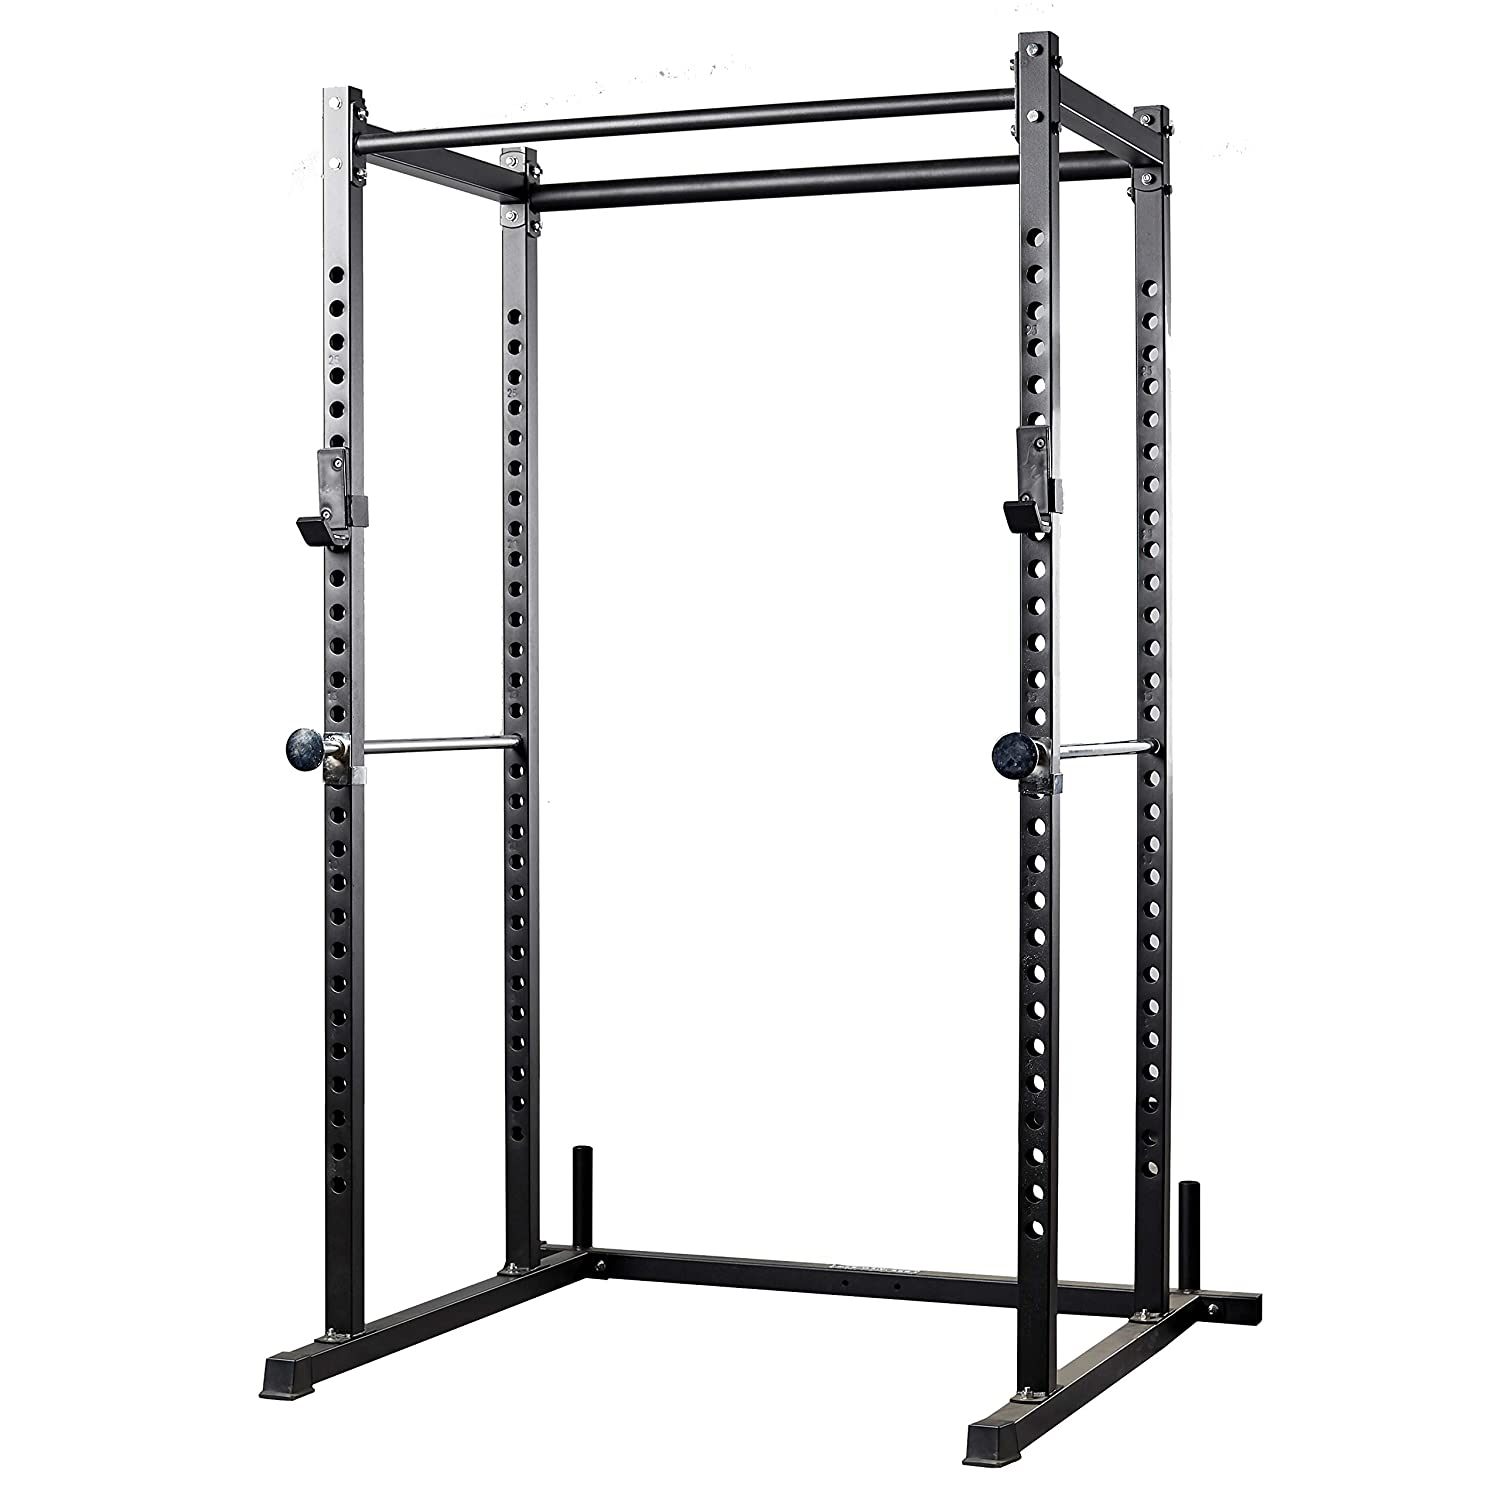 REP FITNESS Power Rack PR-1000 Dual Pullup Bars, Numbered Uprights, 1000 lb Rated, and Optional Upgrades